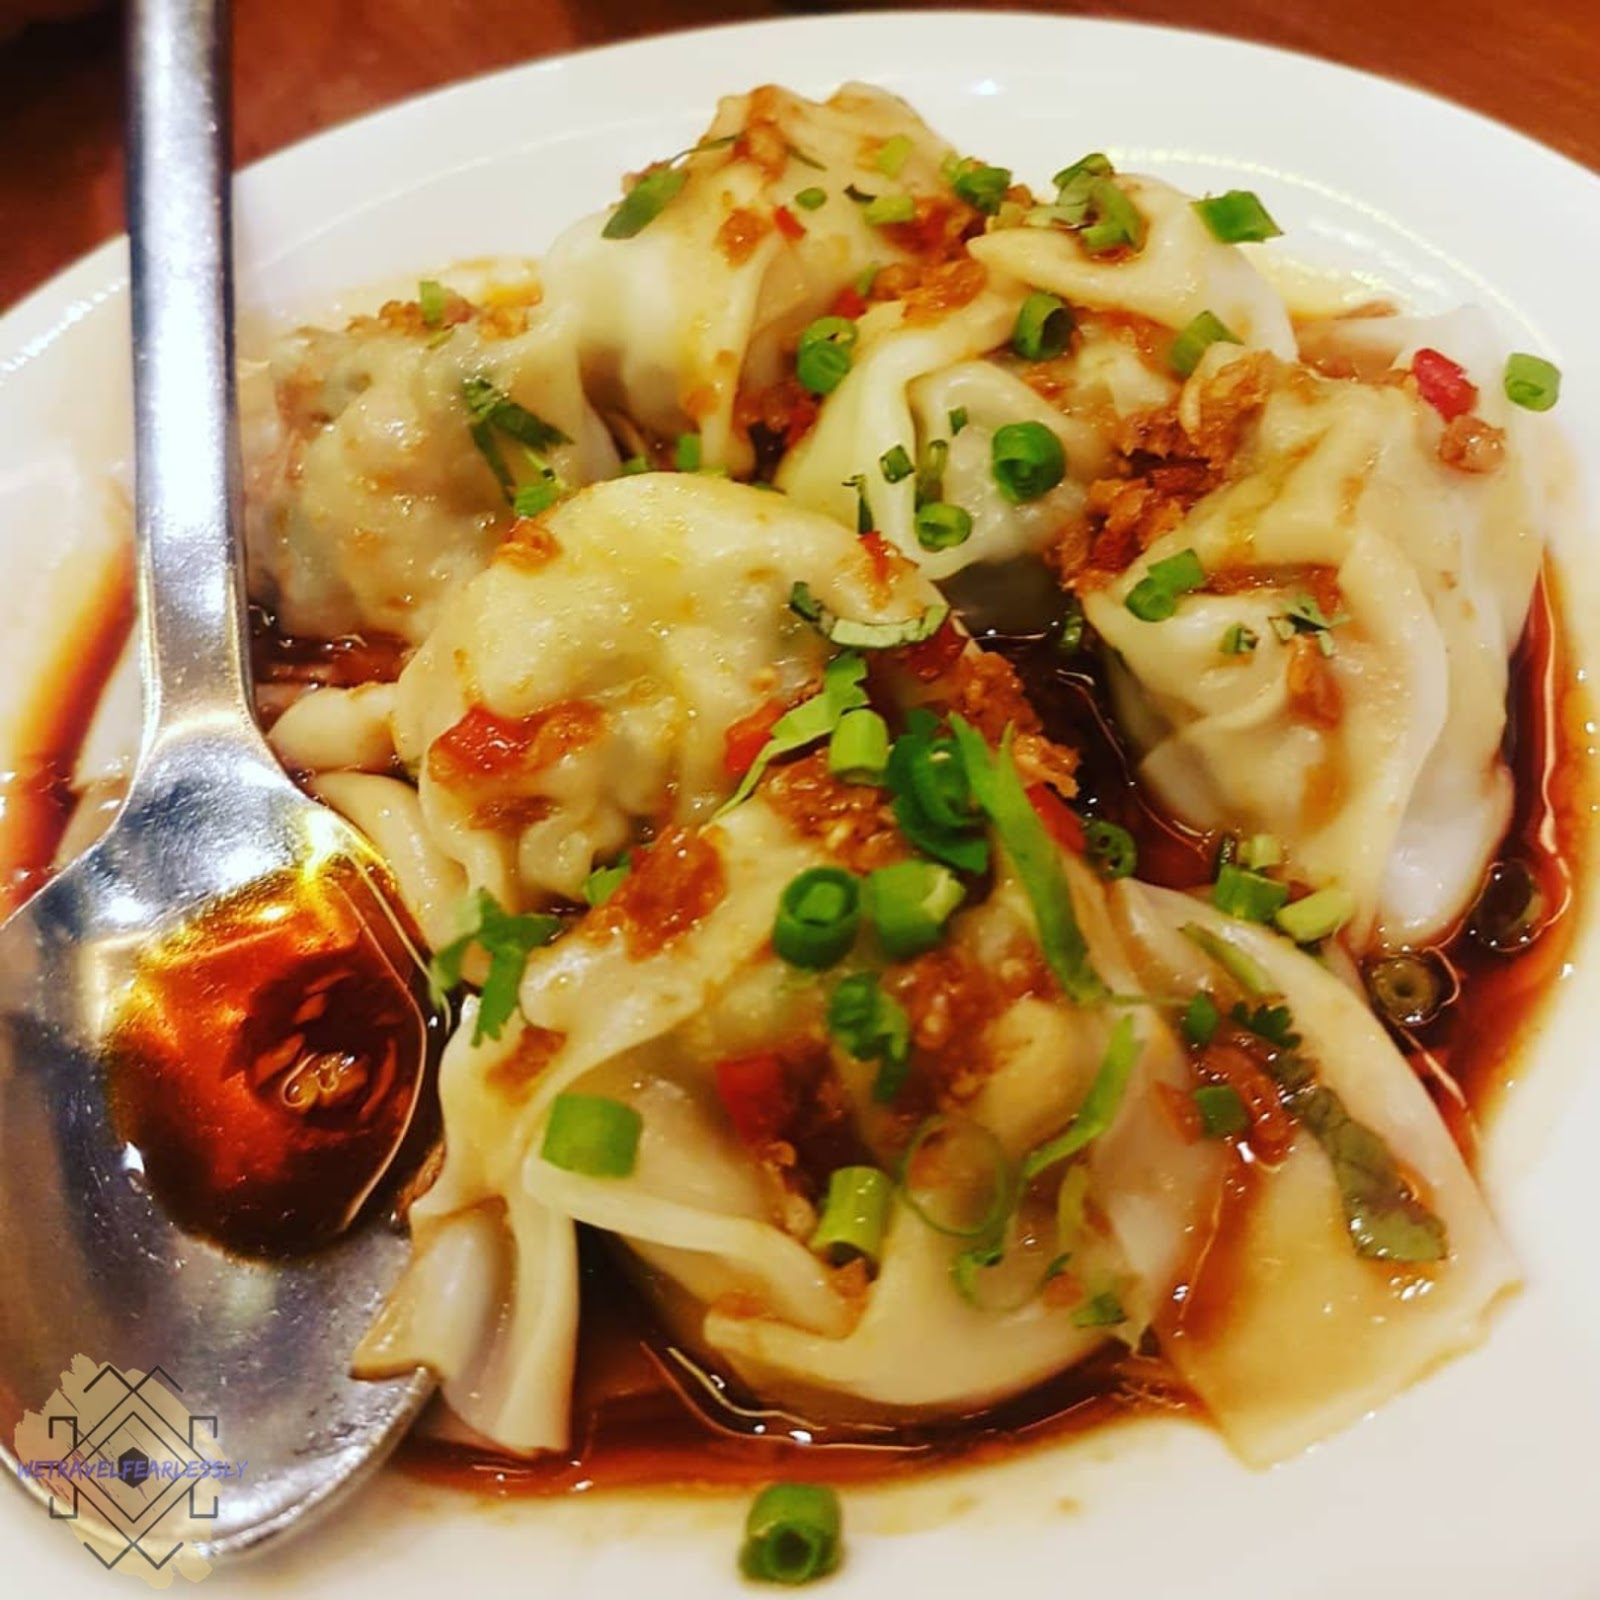 Pork Dumpling in Hot Chili Vinaigrette 6pcs (PHP168) in Paradise Dynasty in S Maison, Pasay City - WTF Review